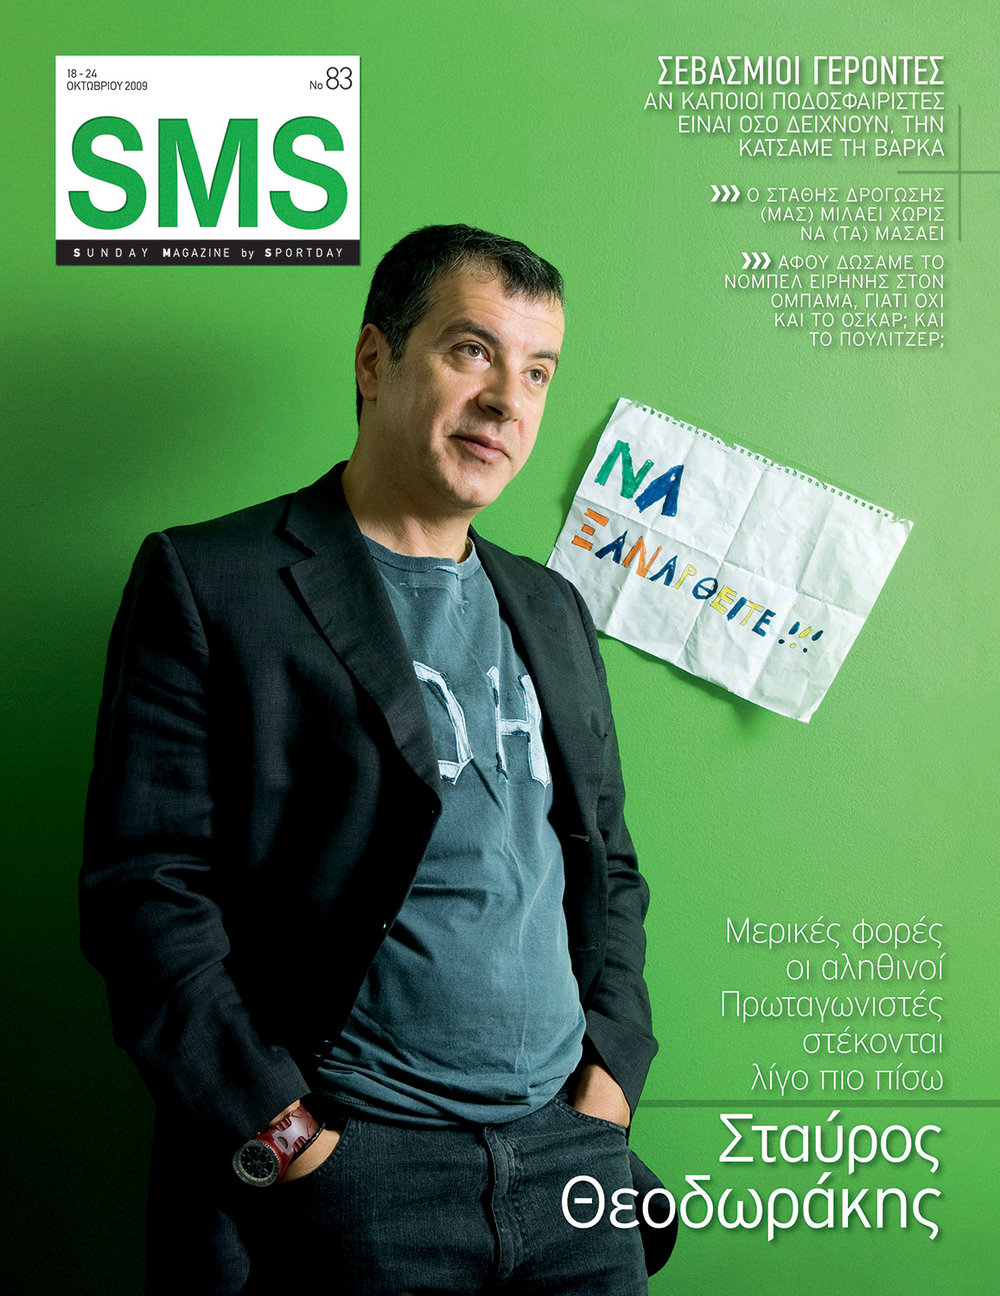 Stavros Theodorakis / journalist / SMS Sportday No 83